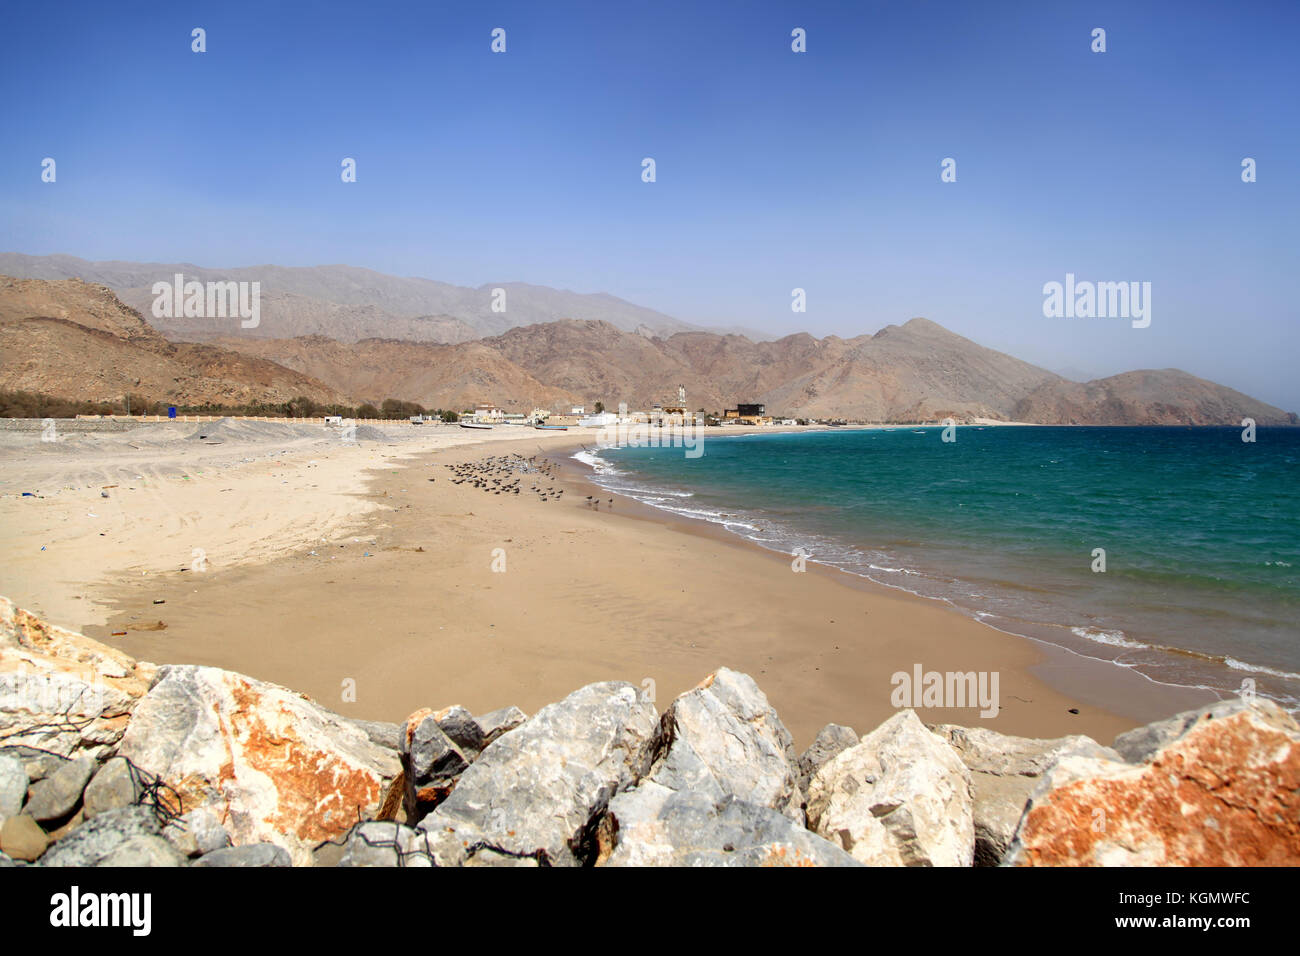 View on a dirty beach in Oman, sunny hot day, Al Hajar Mountains at the background, no people - Stock Image